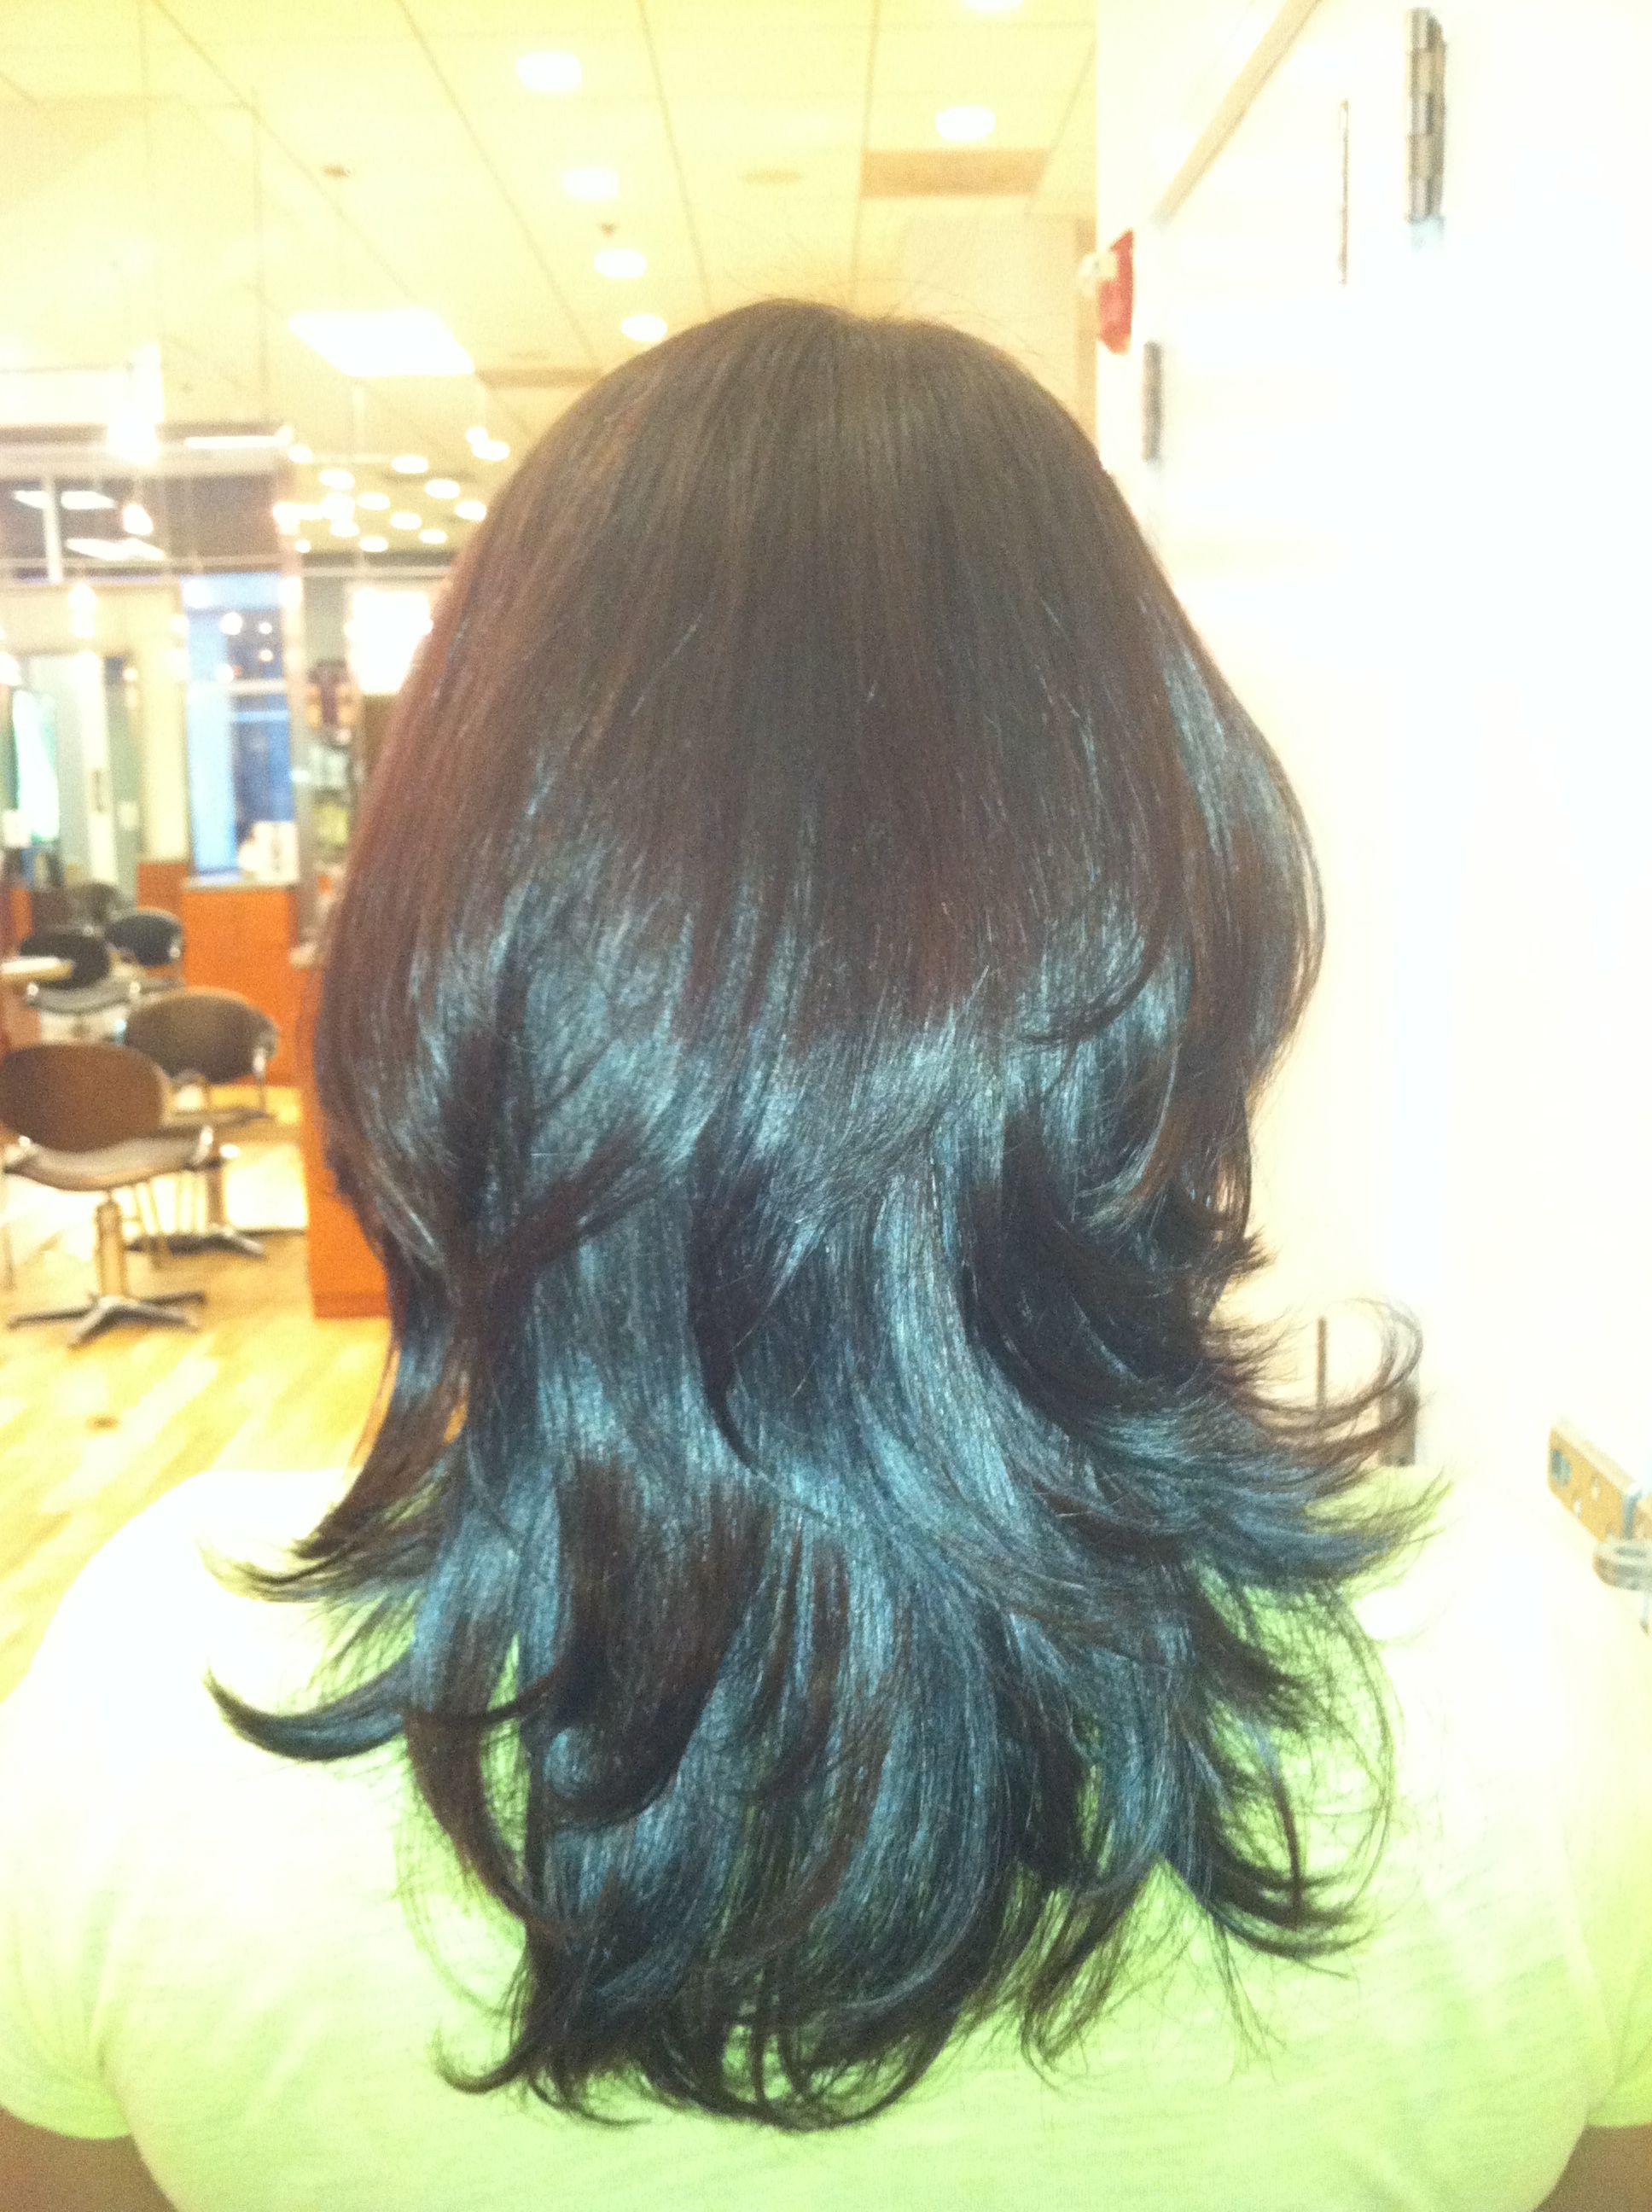 Haircut Style By Terri At Modern Salon Spa Birkdale Village Modern Salon Spa Salon Salons